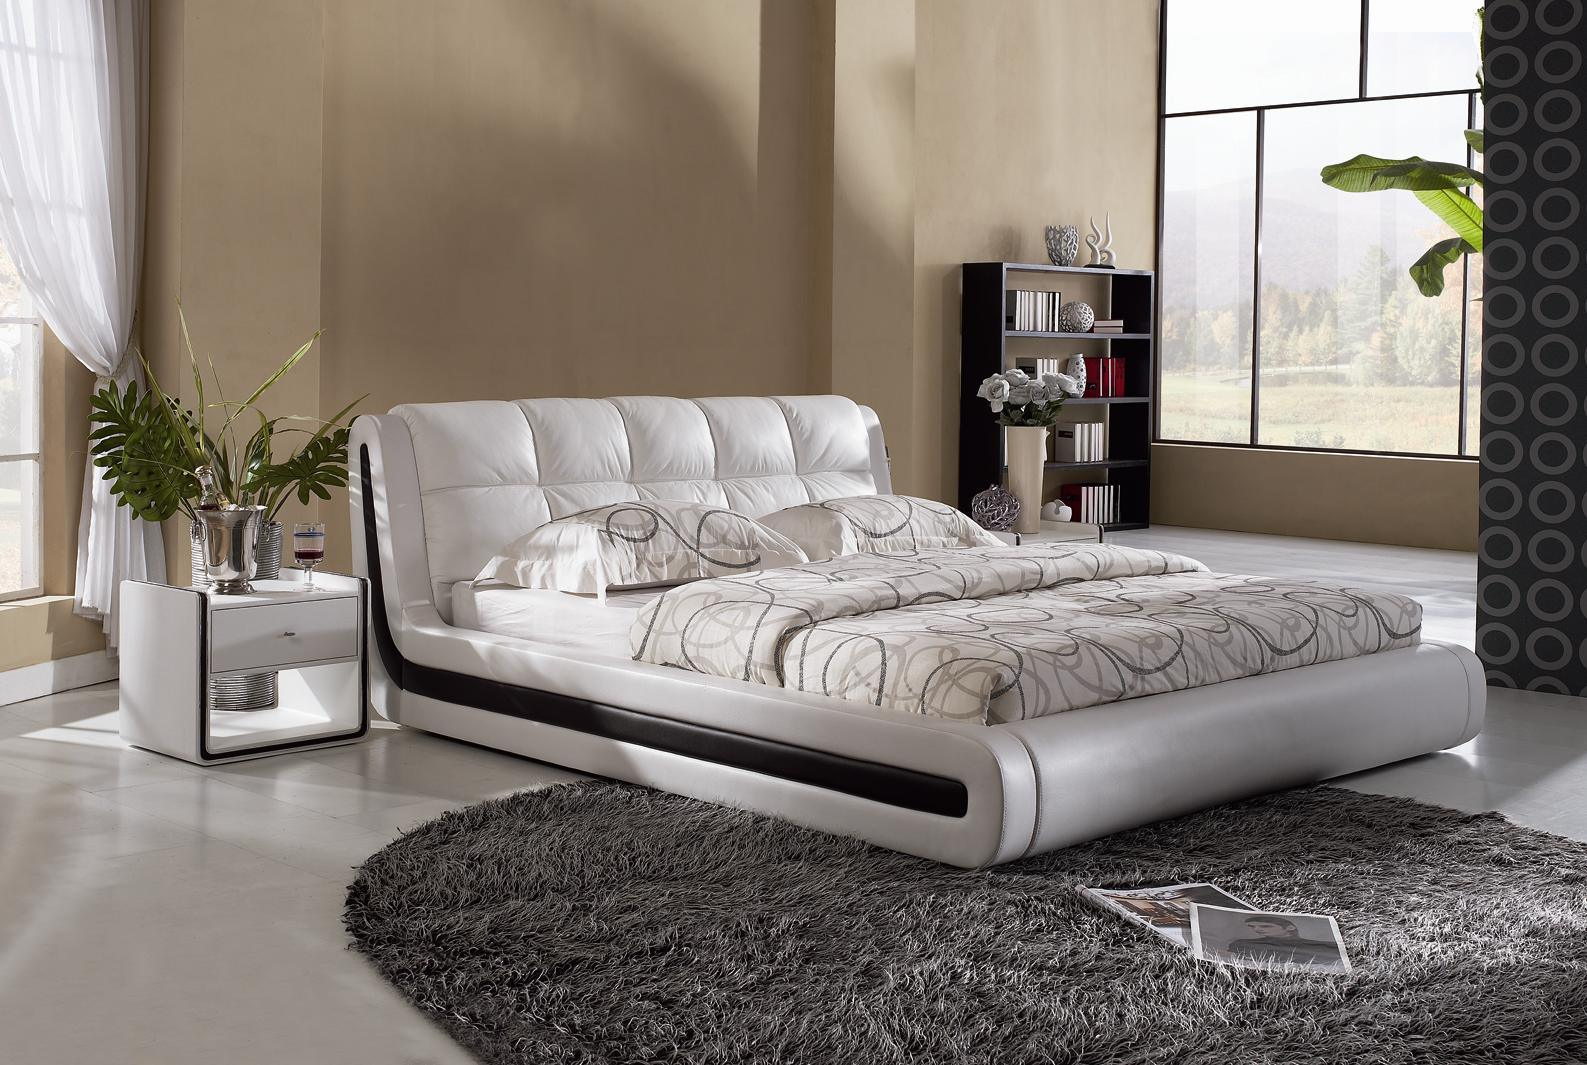 Modern beds design pictures simple home decoration for Contemporary beds